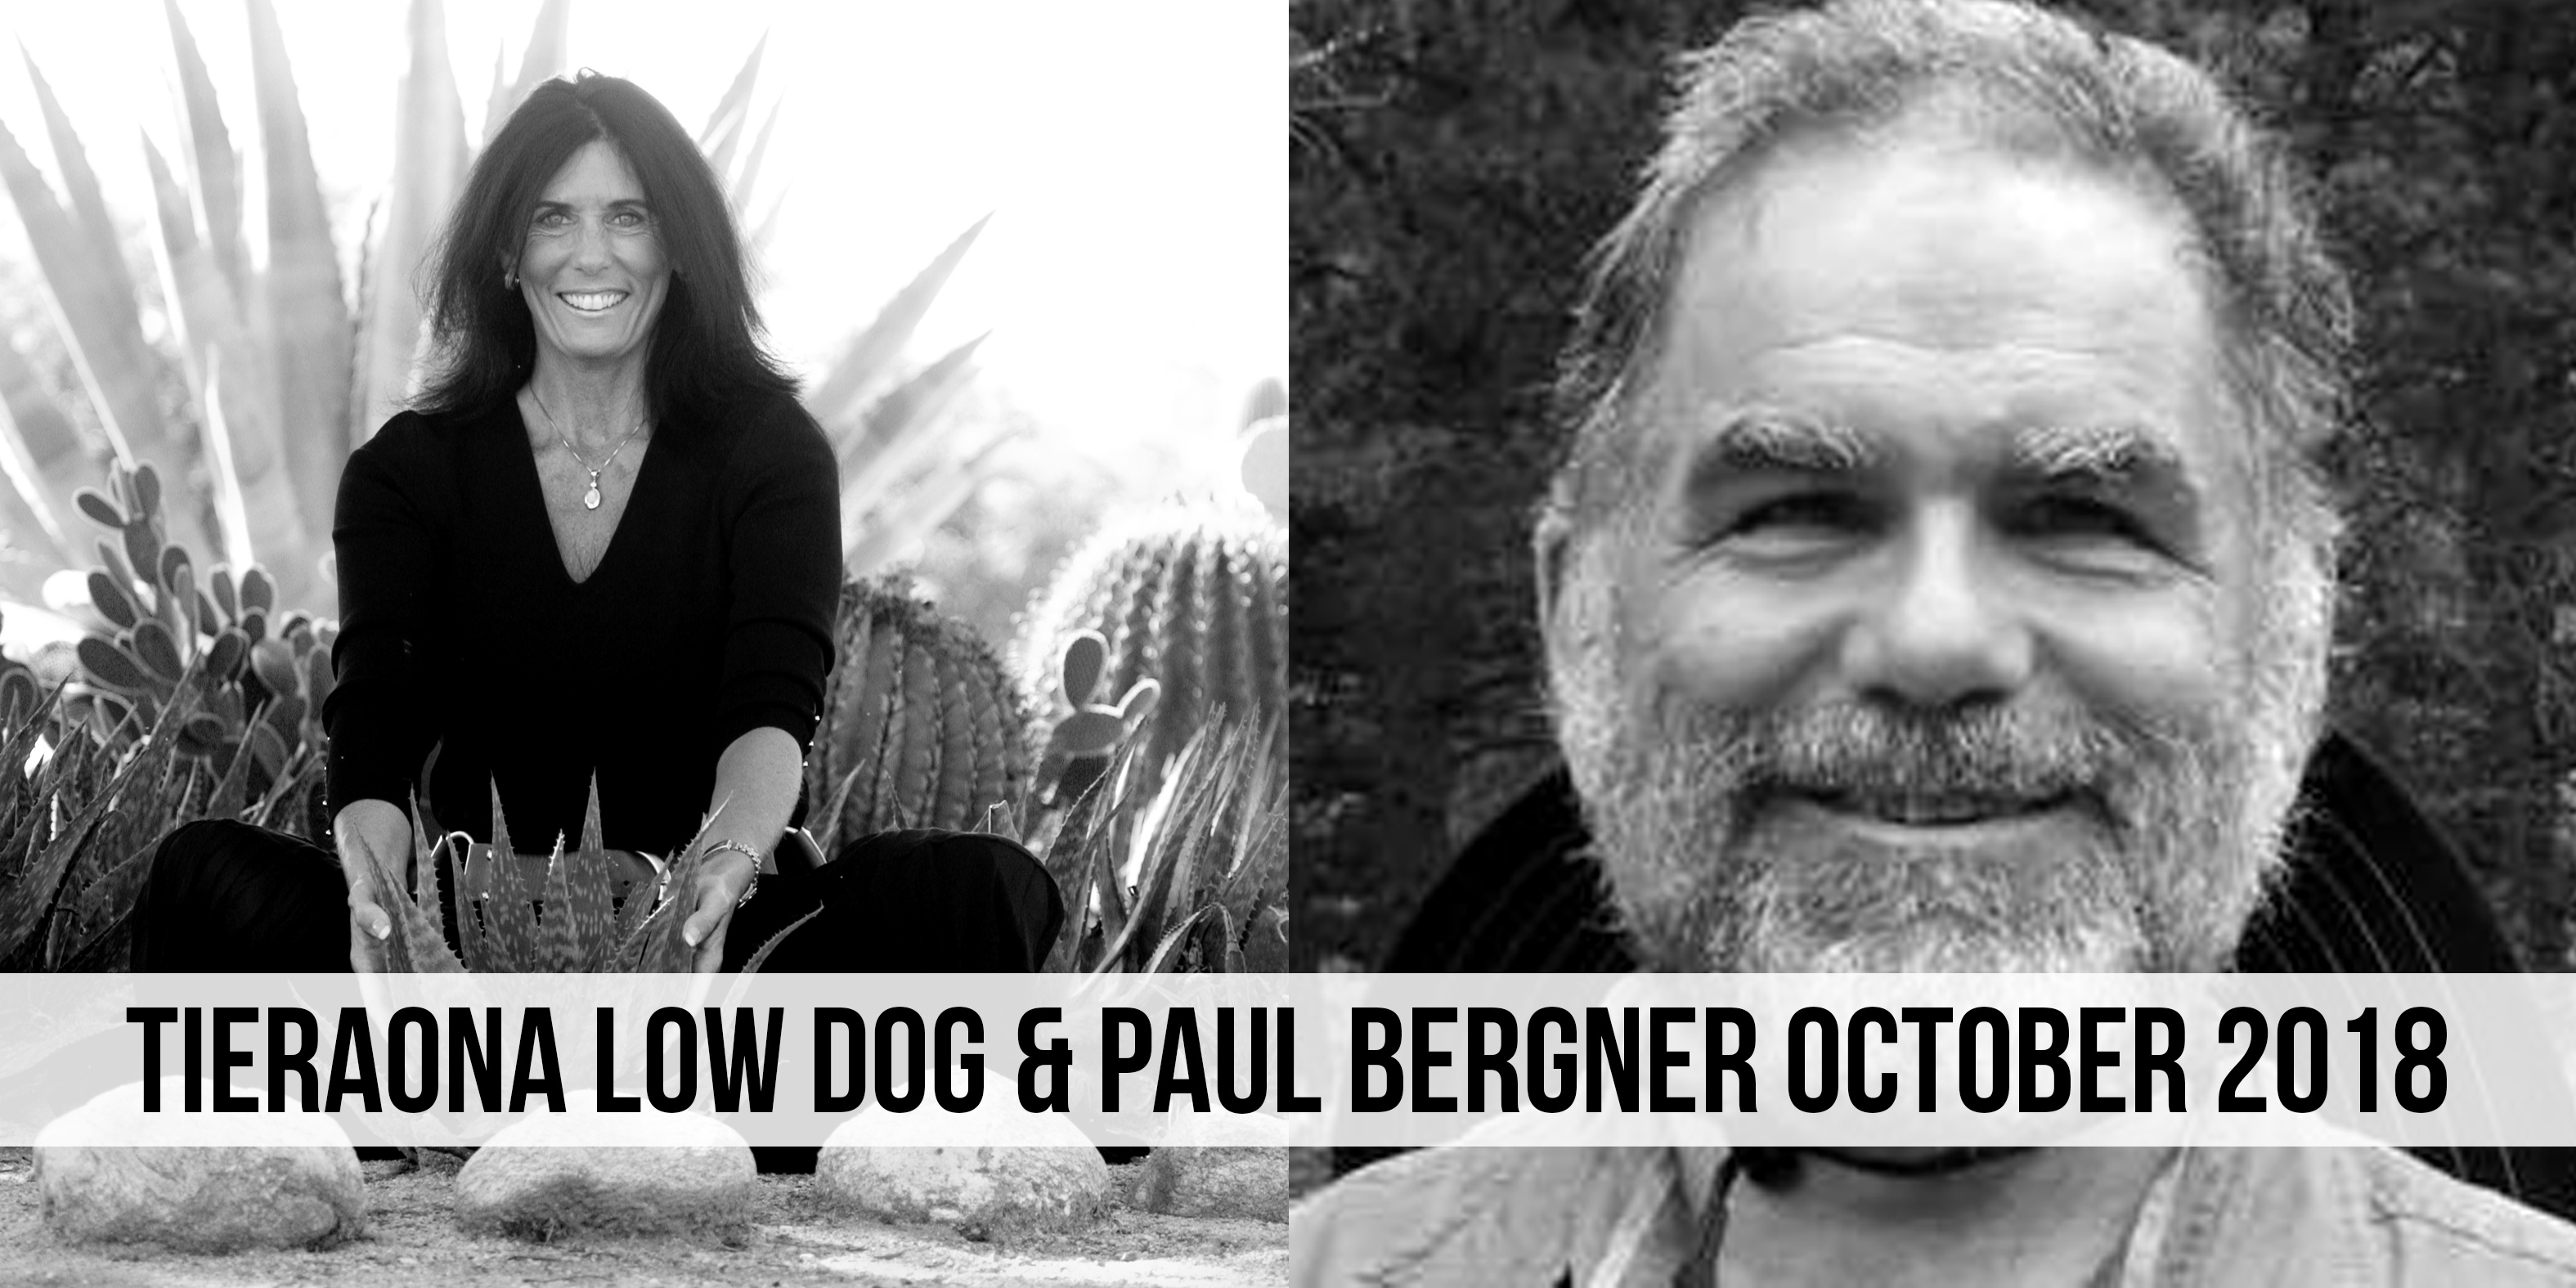 Tieraona Low Dog & Paul Bergner October 2018